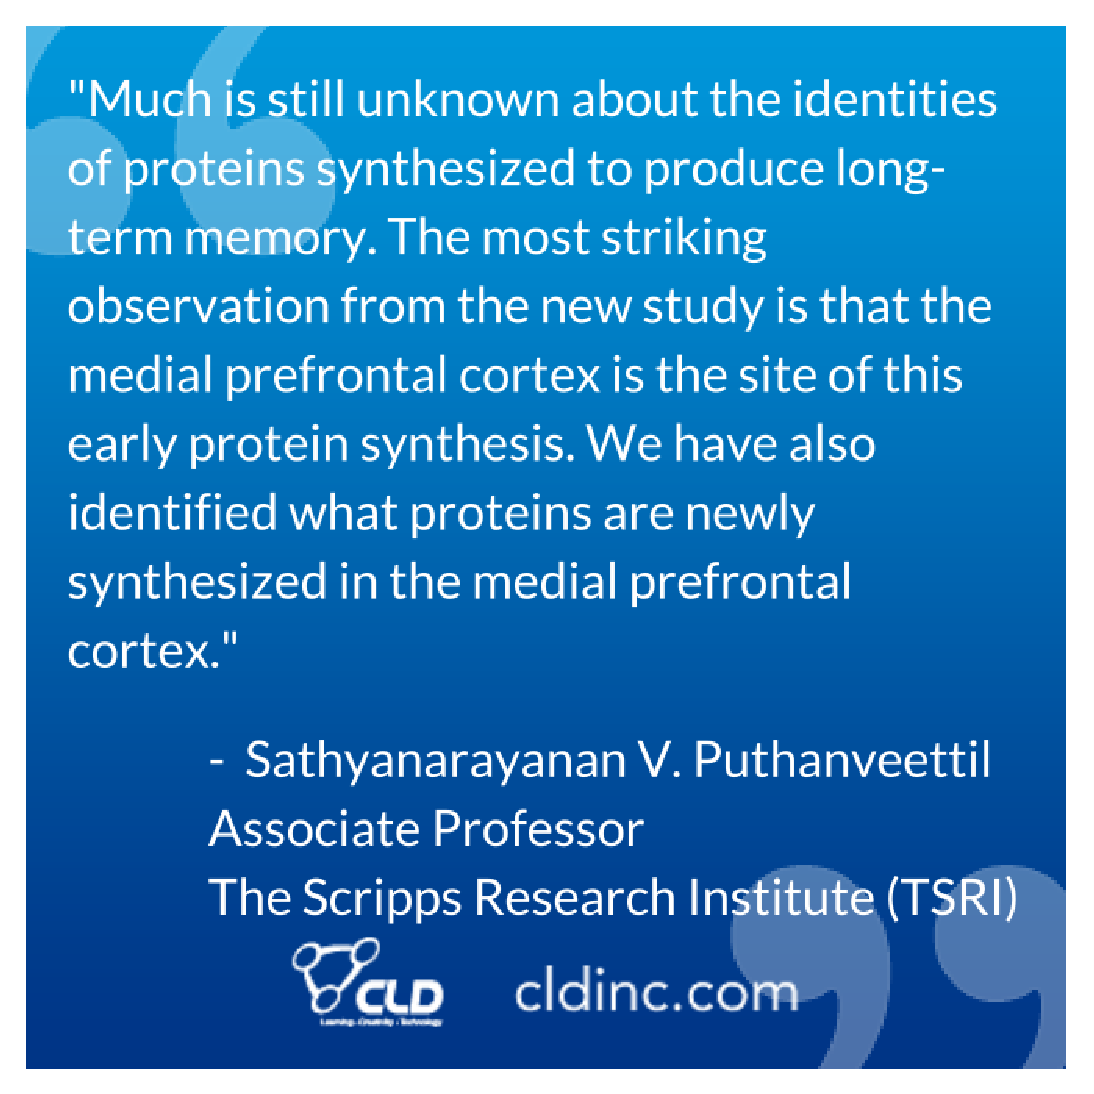 """Much is still unknown about the identities of proteins synthesized to produce long-term memory. The most striking observation from the new study is that the medial prefrontal cortex is the site of this early protein synthesis. We have also identified what proteins are newly synthesized in the medial prefrontal cortex."""" - The Scripps Research Institute (TSRI) Associate Professor Sathyanarayanan V. Puthanveettil"""